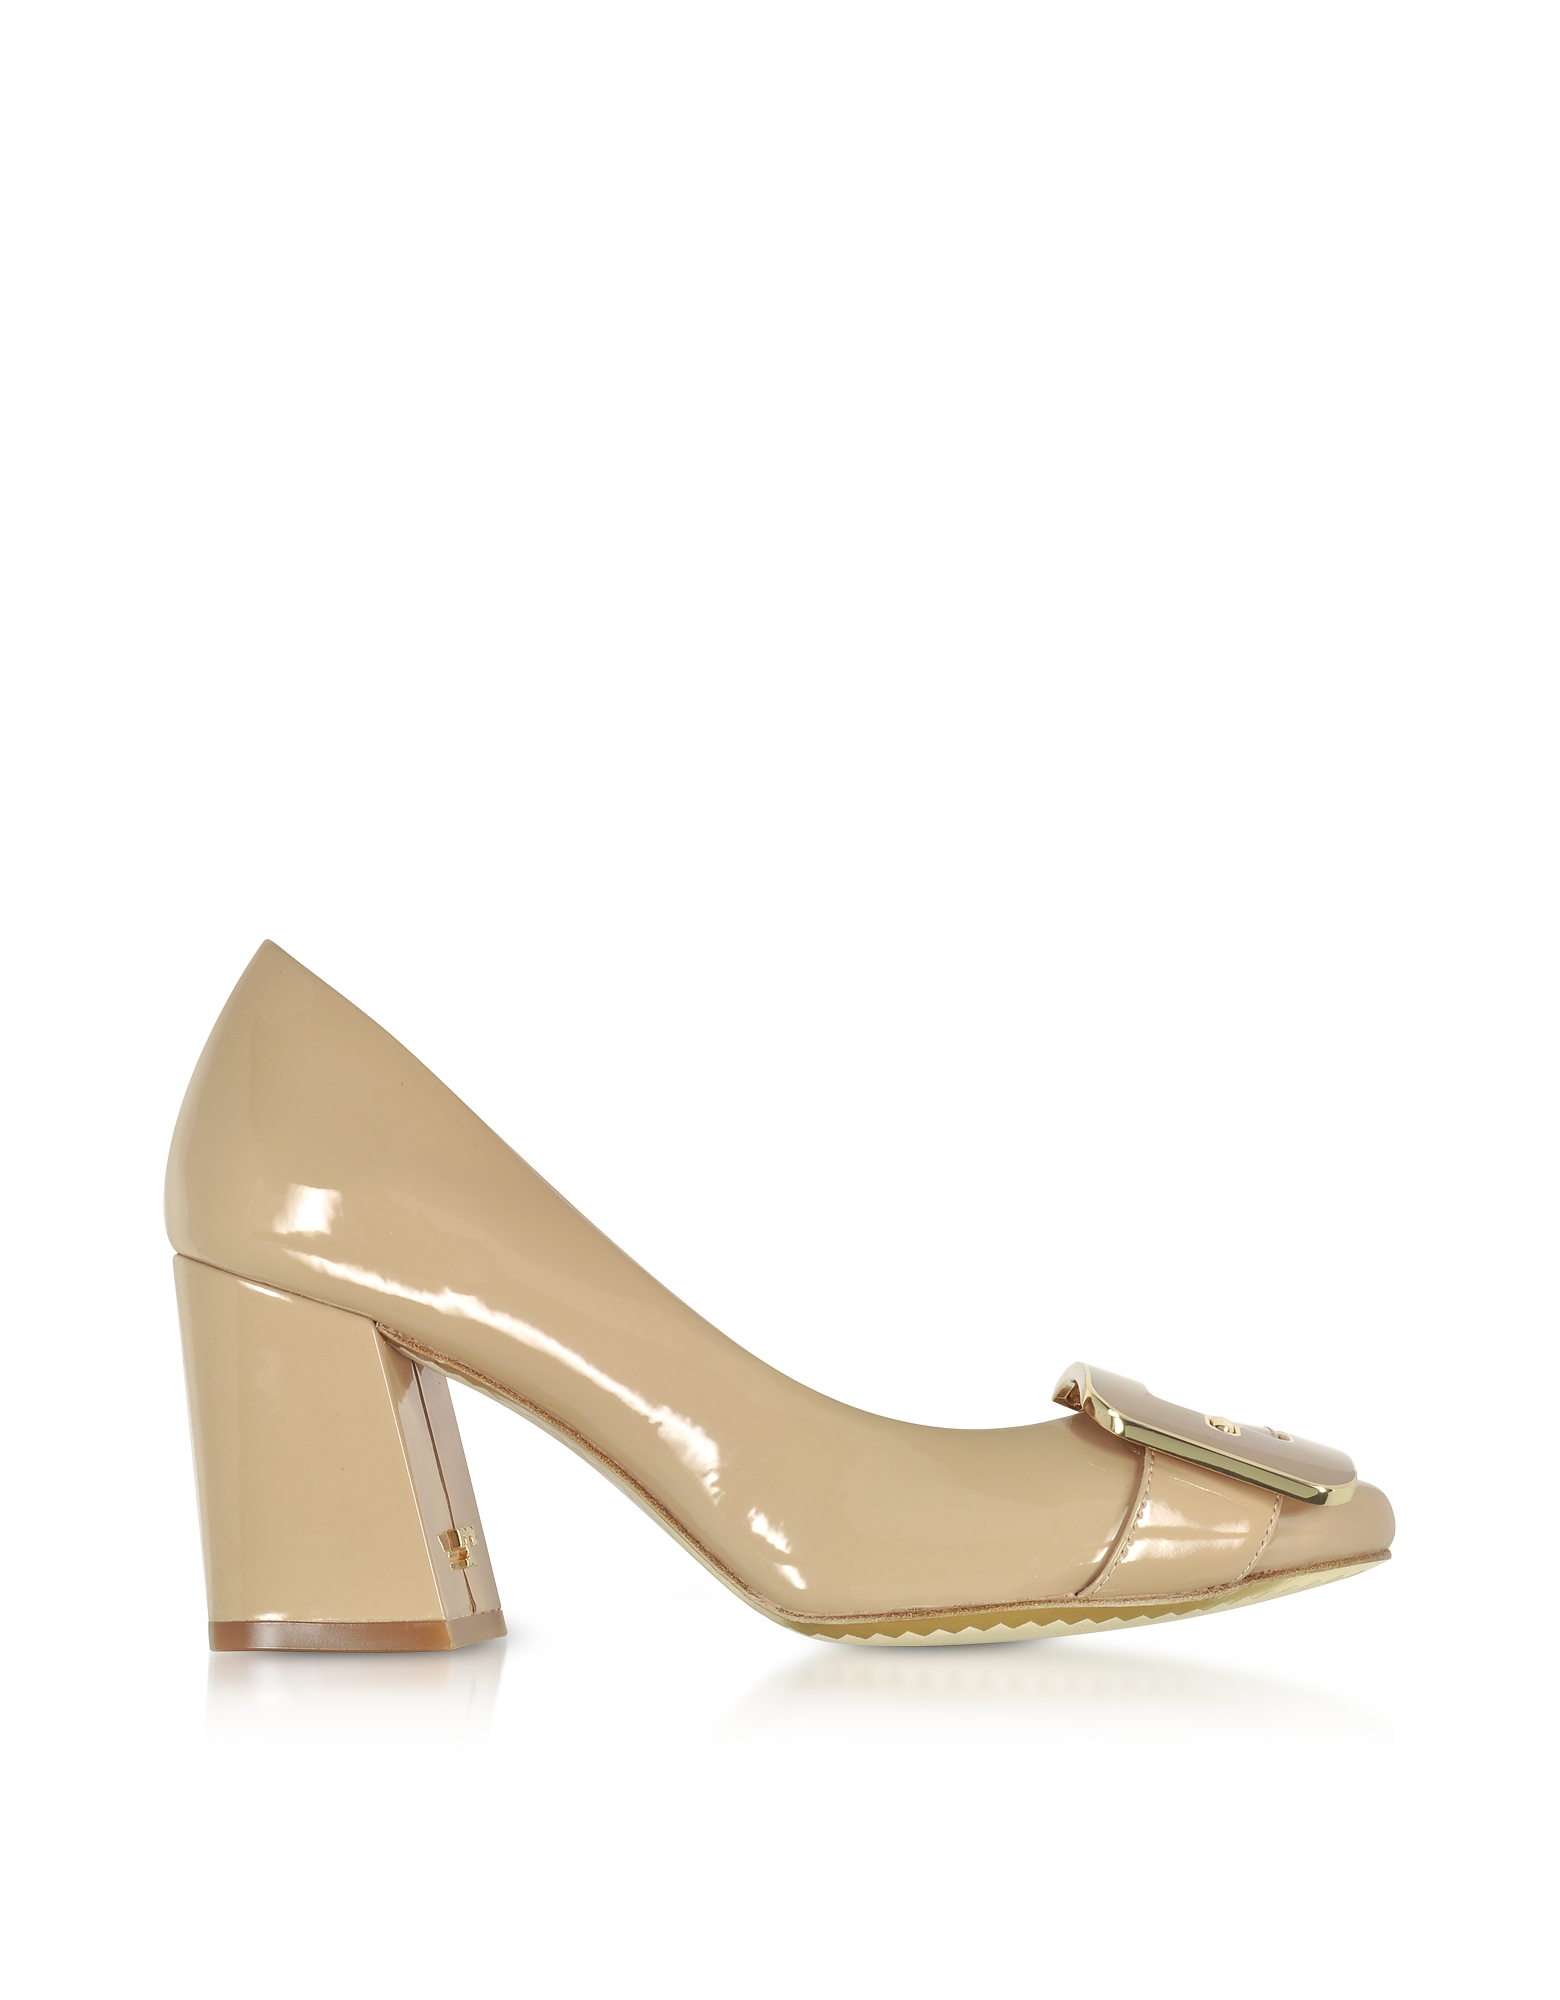 Tory Burch Shoes, Maria Tory Beige Patent Leather Heel Pumps